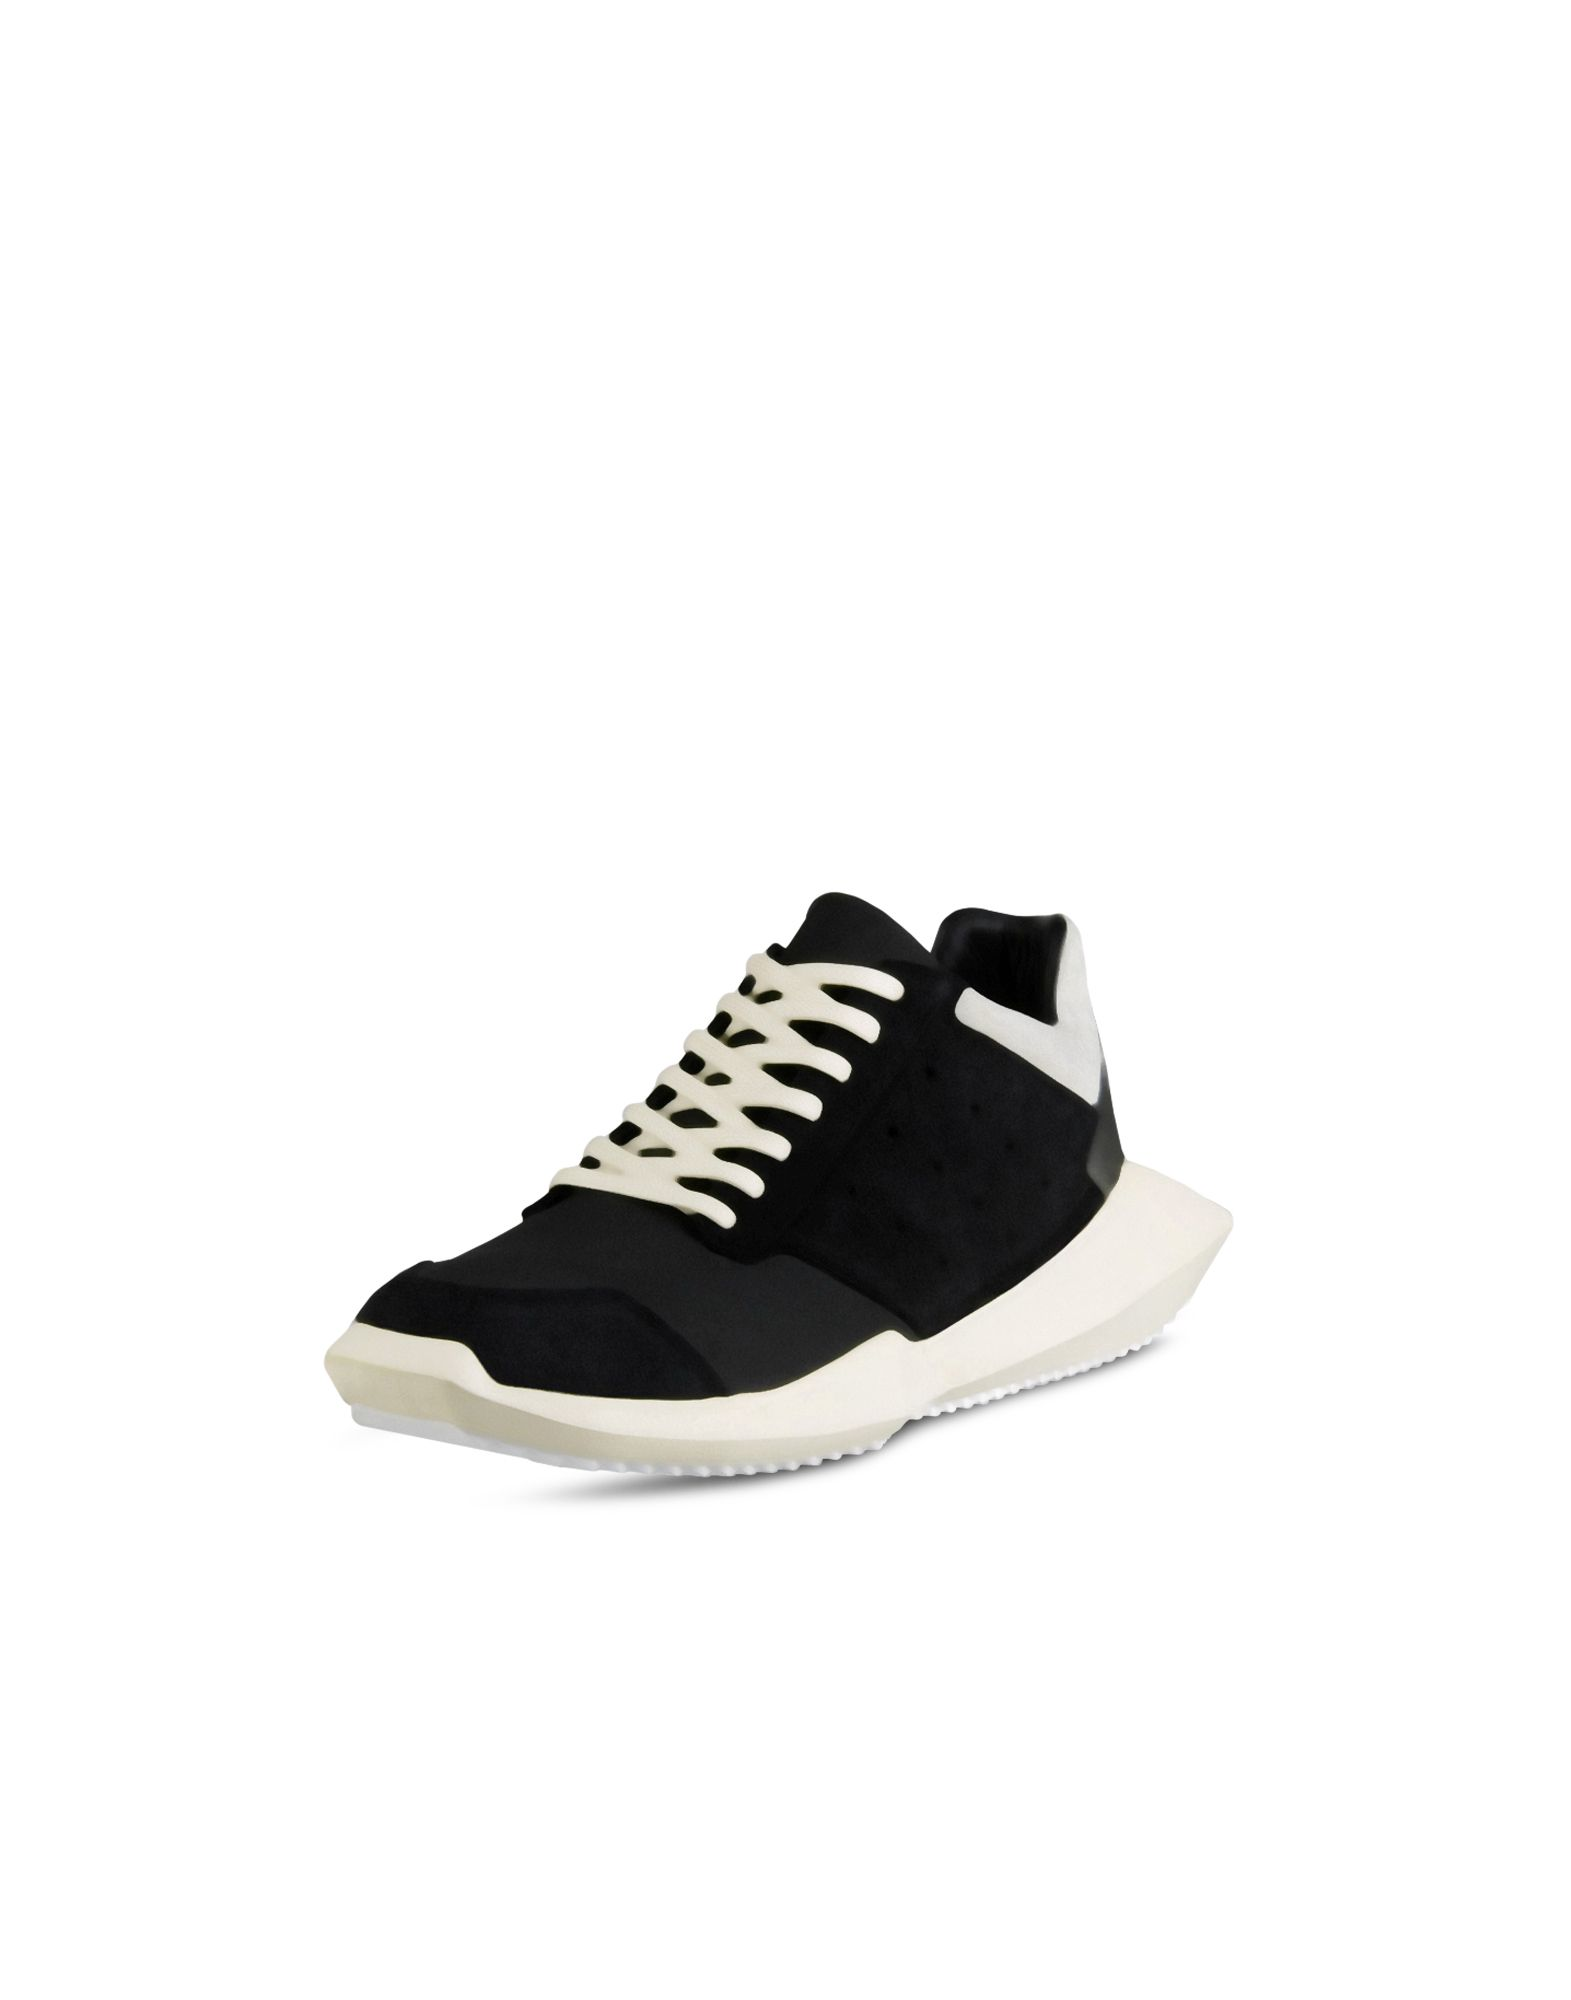 sneakers adidas x rick owens tech runner for women online official store. Black Bedroom Furniture Sets. Home Design Ideas